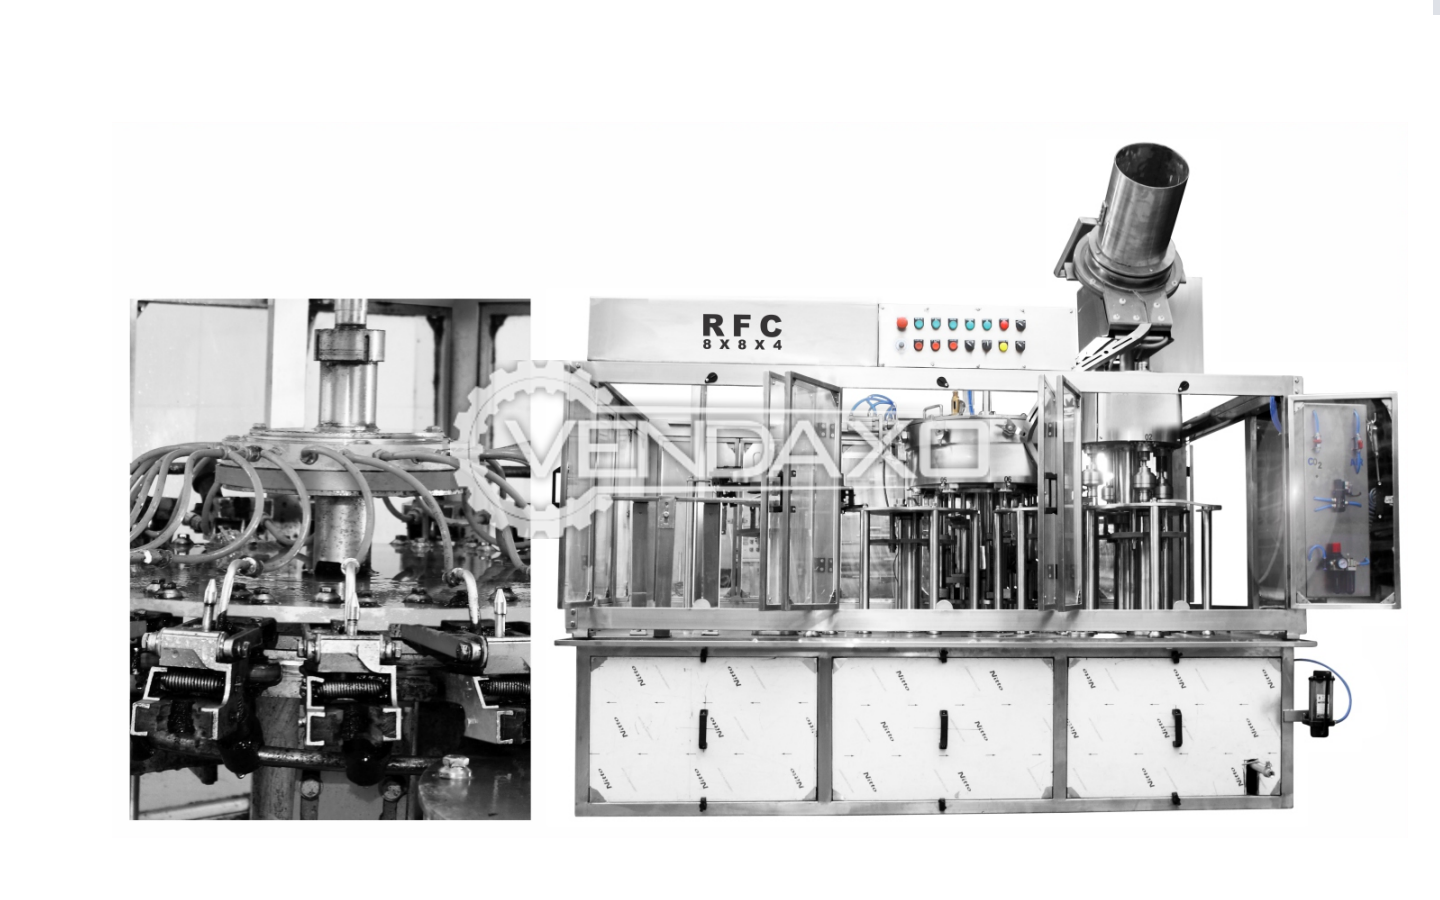 S.S Engineering RFC 60 Machine for Filling of Soda and carbonated drinks - 60 BPM for 500 Ml